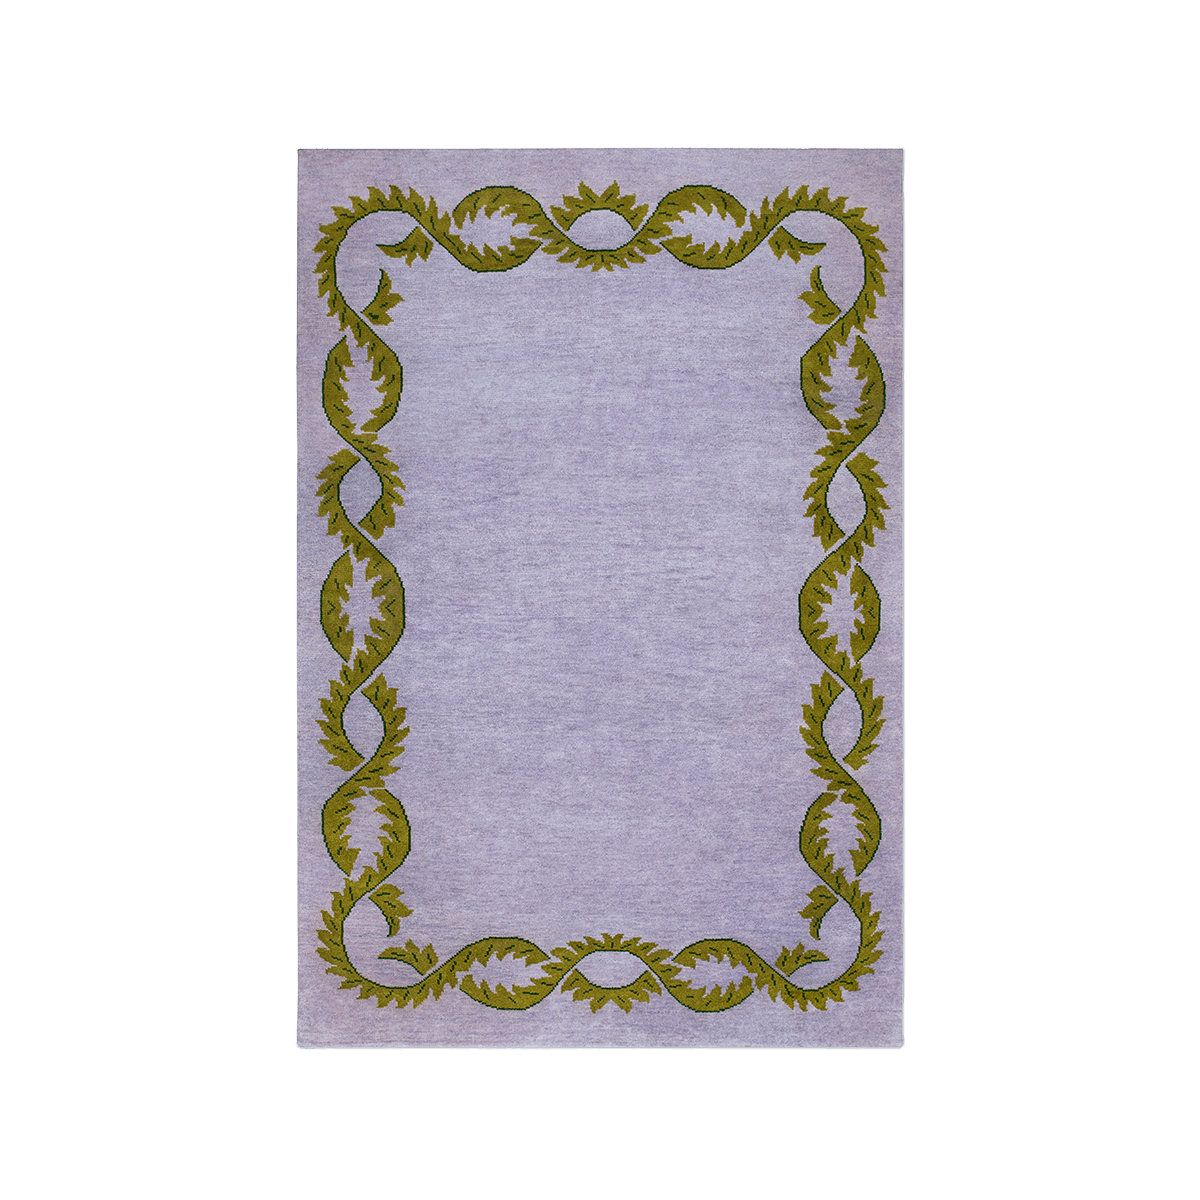 Climbing Vine hand knotted wool rug.